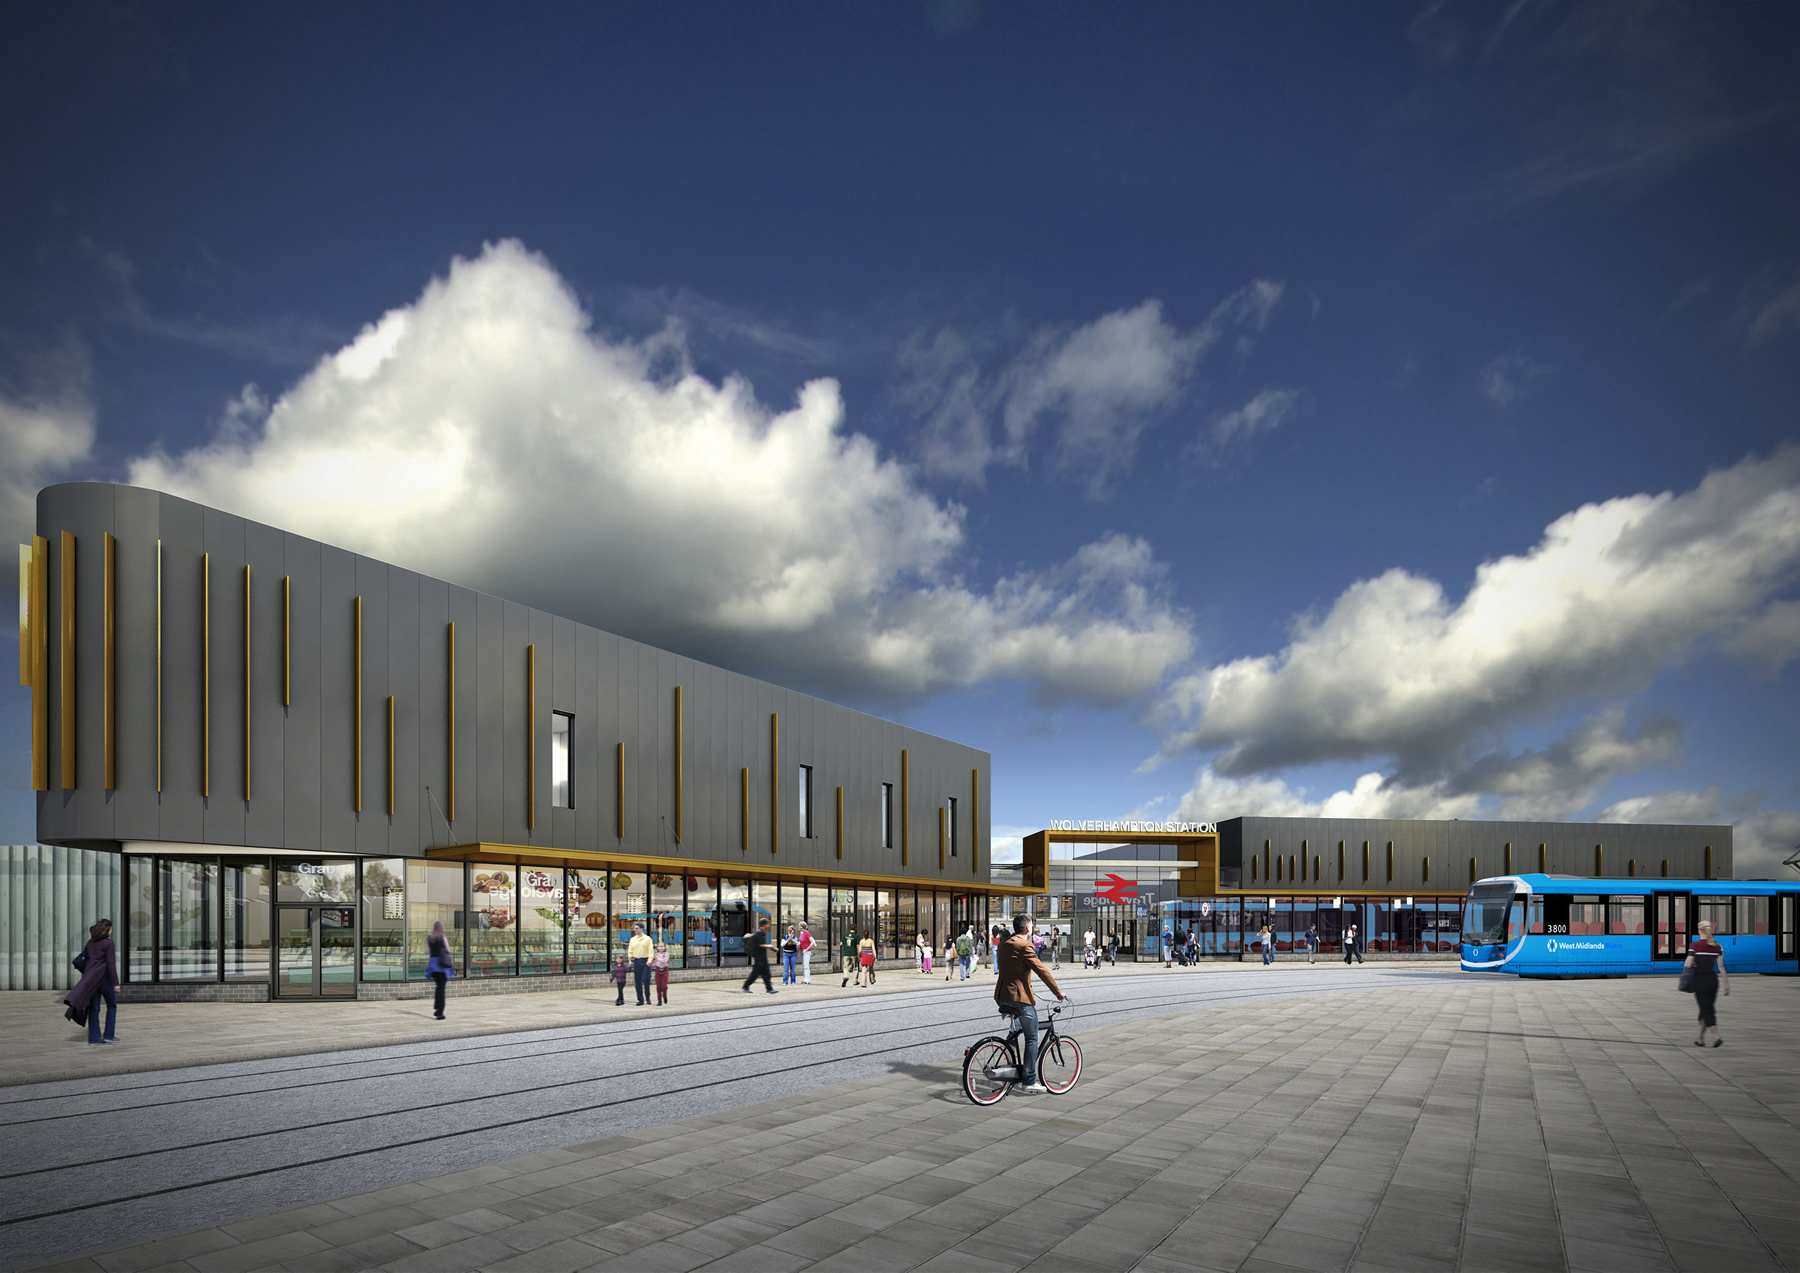 Railway station works on track as Interchange wins award